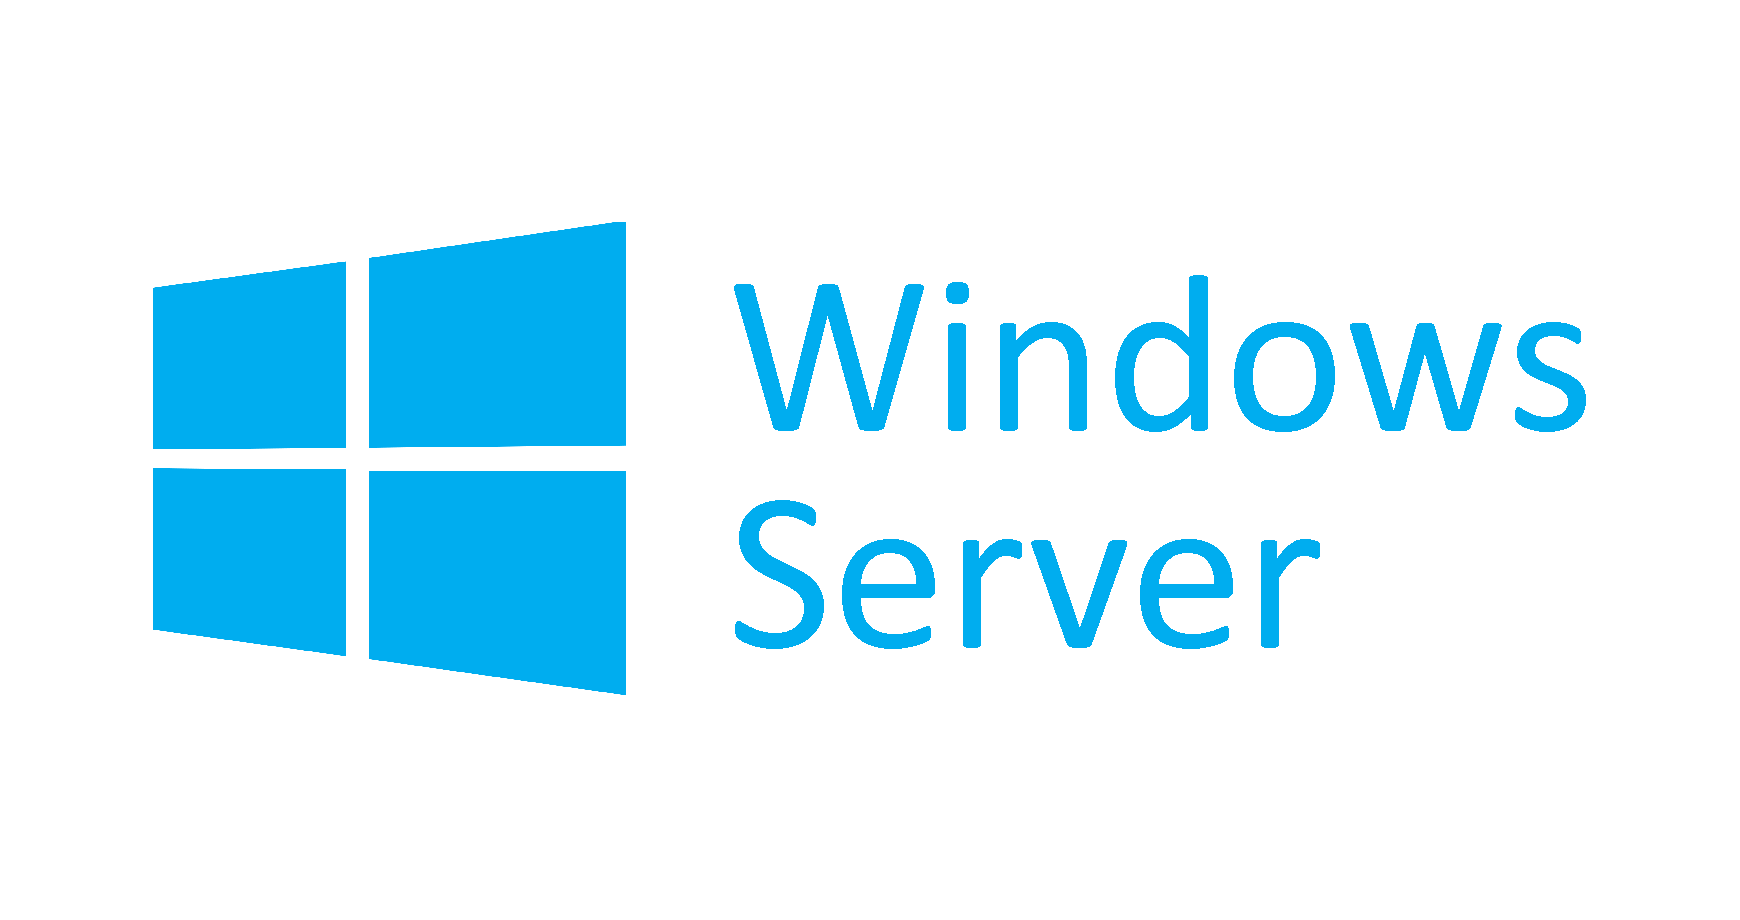 HelpIT-service-informatique-Braine-l-alleud-brabant-wallon-service-installation-gestion-winbooks-rapide-efficace-stable-fiable-windows-server-windows-10